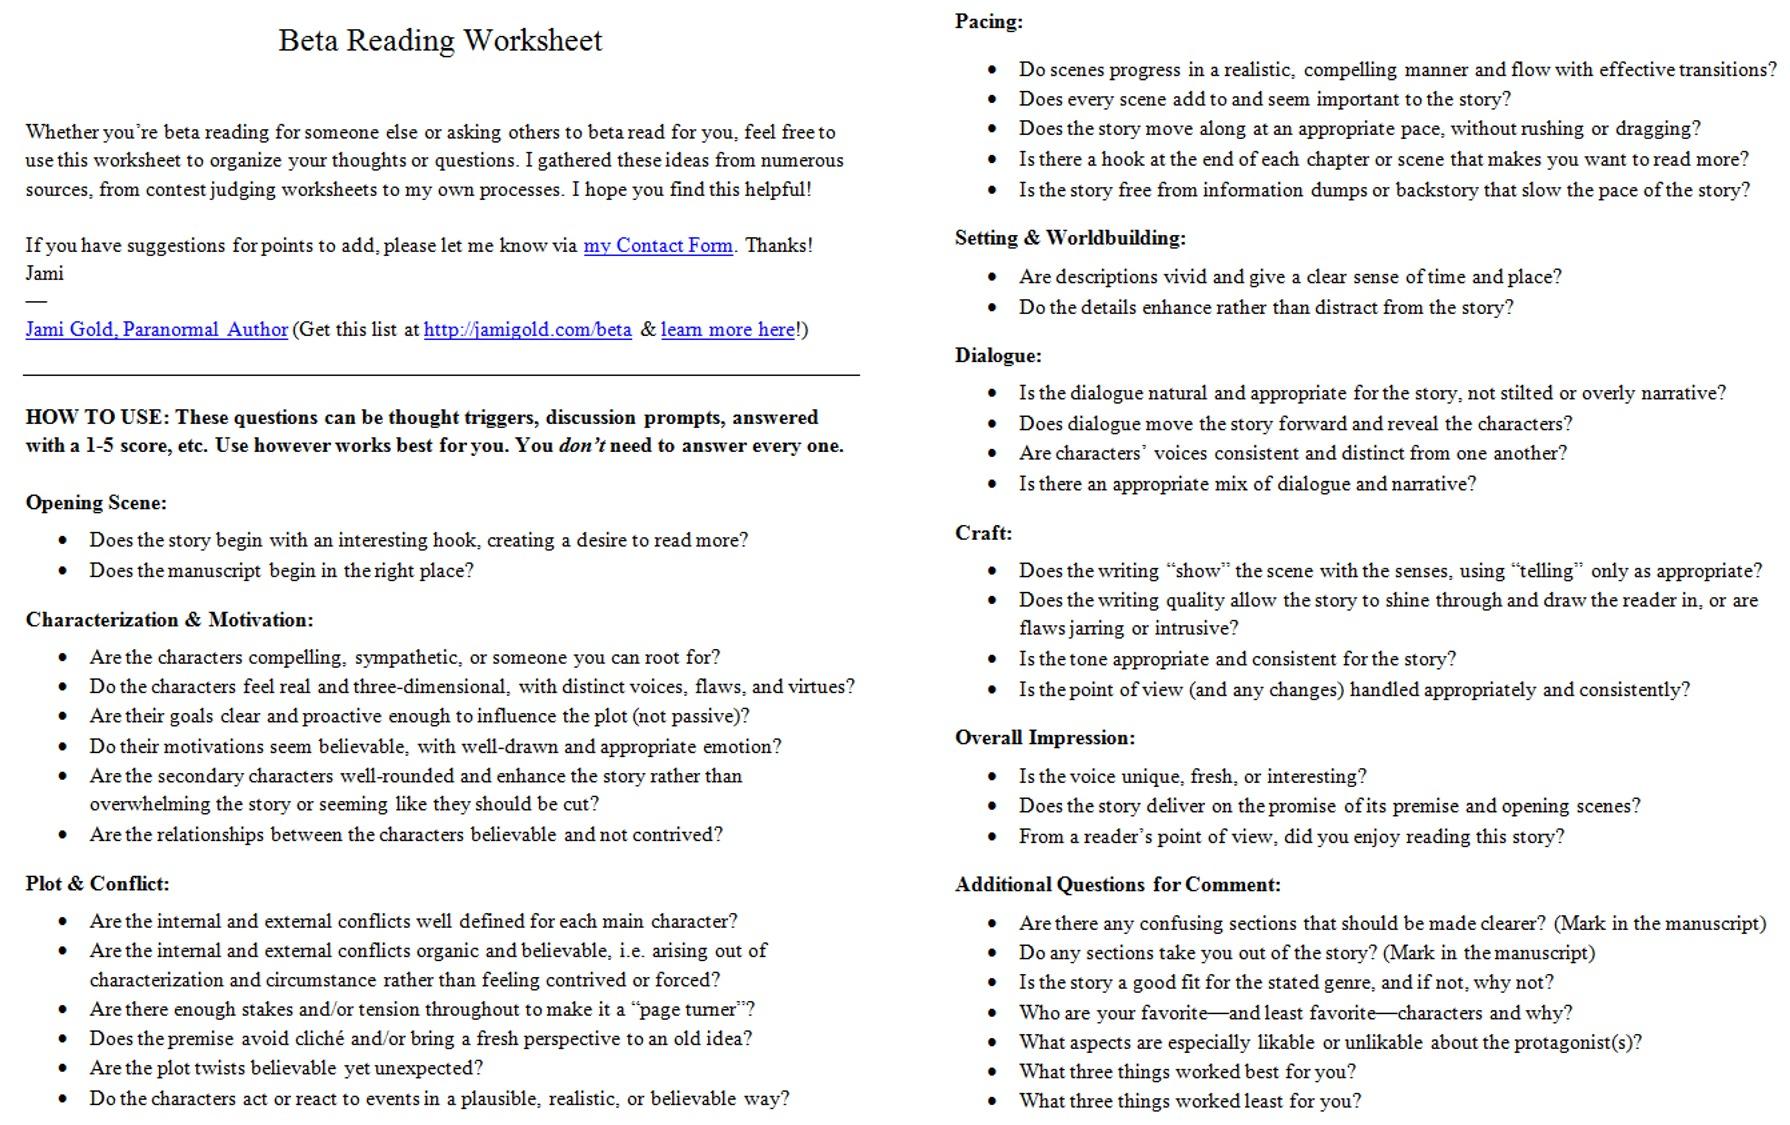 Weirdmailus  Outstanding Worksheets For Writers  Jami Gold Paranormal Author With Interesting Screen Shot Of The Twopage Beta Reading Worksheet With Breathtaking Super Mario Worksheets Also Fl Blend Worksheets In Addition Time Connectives Worksheets And Long A Words Worksheets As Well As Ptsd Treatment Worksheets Additionally Percentage Word Problem Worksheets From Jamigoldcom With Weirdmailus  Interesting Worksheets For Writers  Jami Gold Paranormal Author With Breathtaking Screen Shot Of The Twopage Beta Reading Worksheet And Outstanding Super Mario Worksheets Also Fl Blend Worksheets In Addition Time Connectives Worksheets From Jamigoldcom